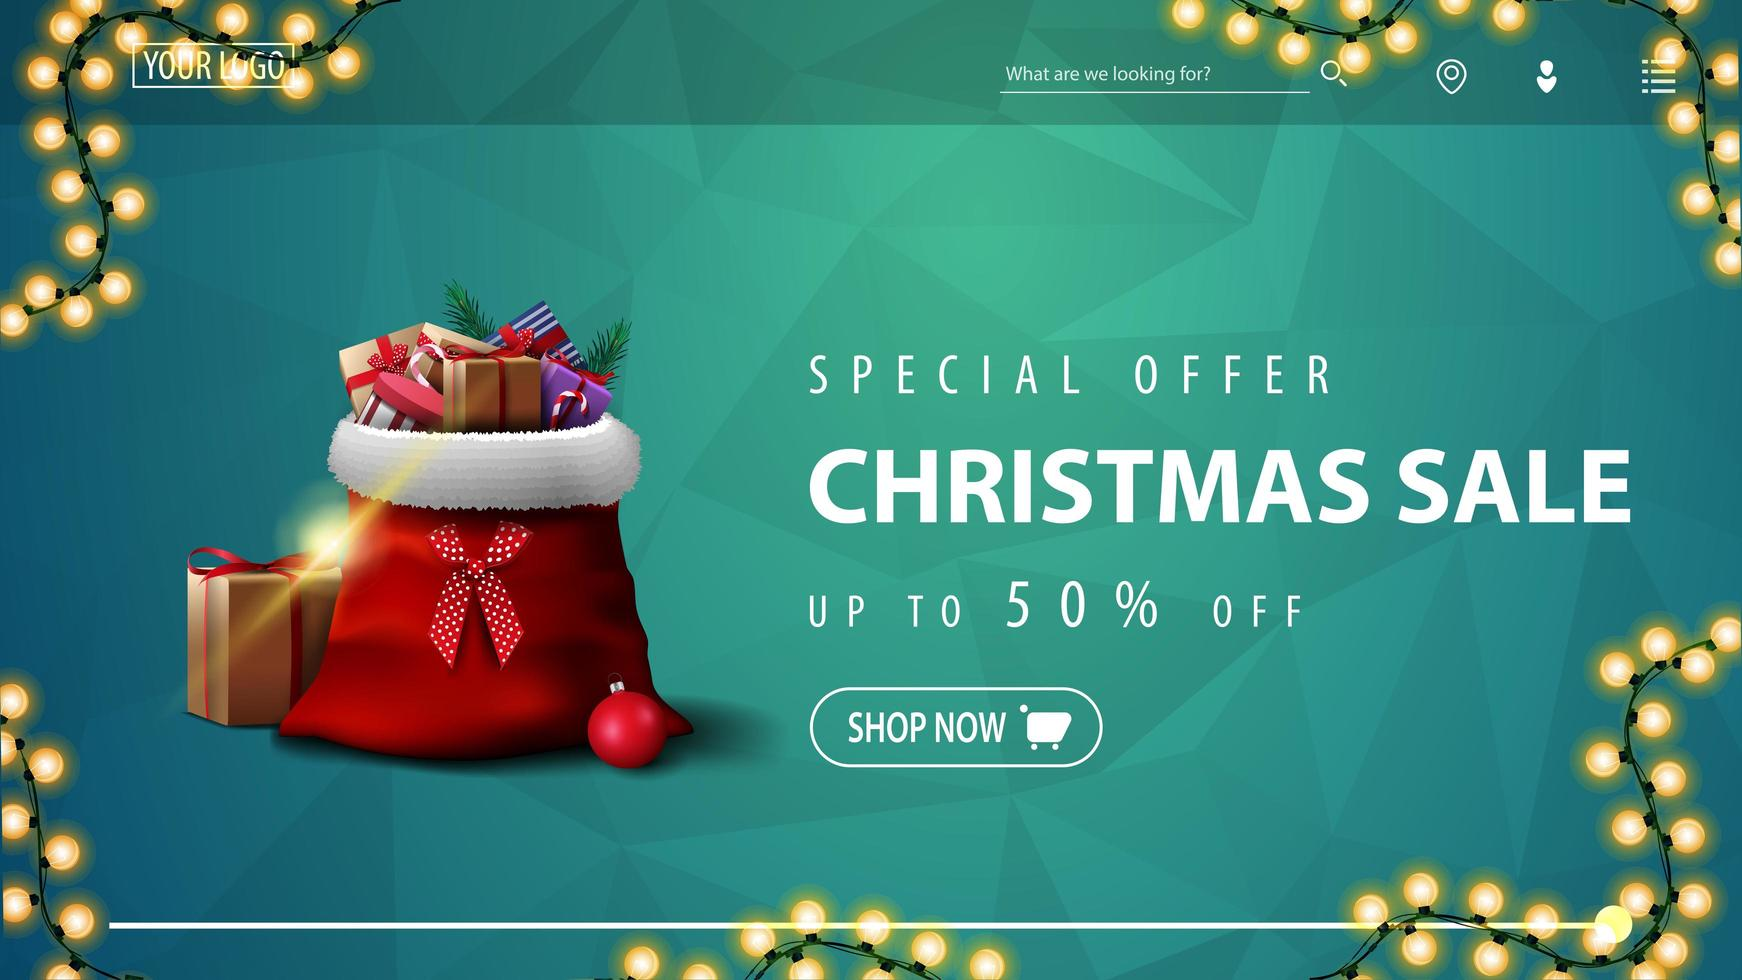 Special offer, Christmas sale, up to 50 off, blue discount banner for website with polygonal texture, garland and Santa Claus bag with presents vector